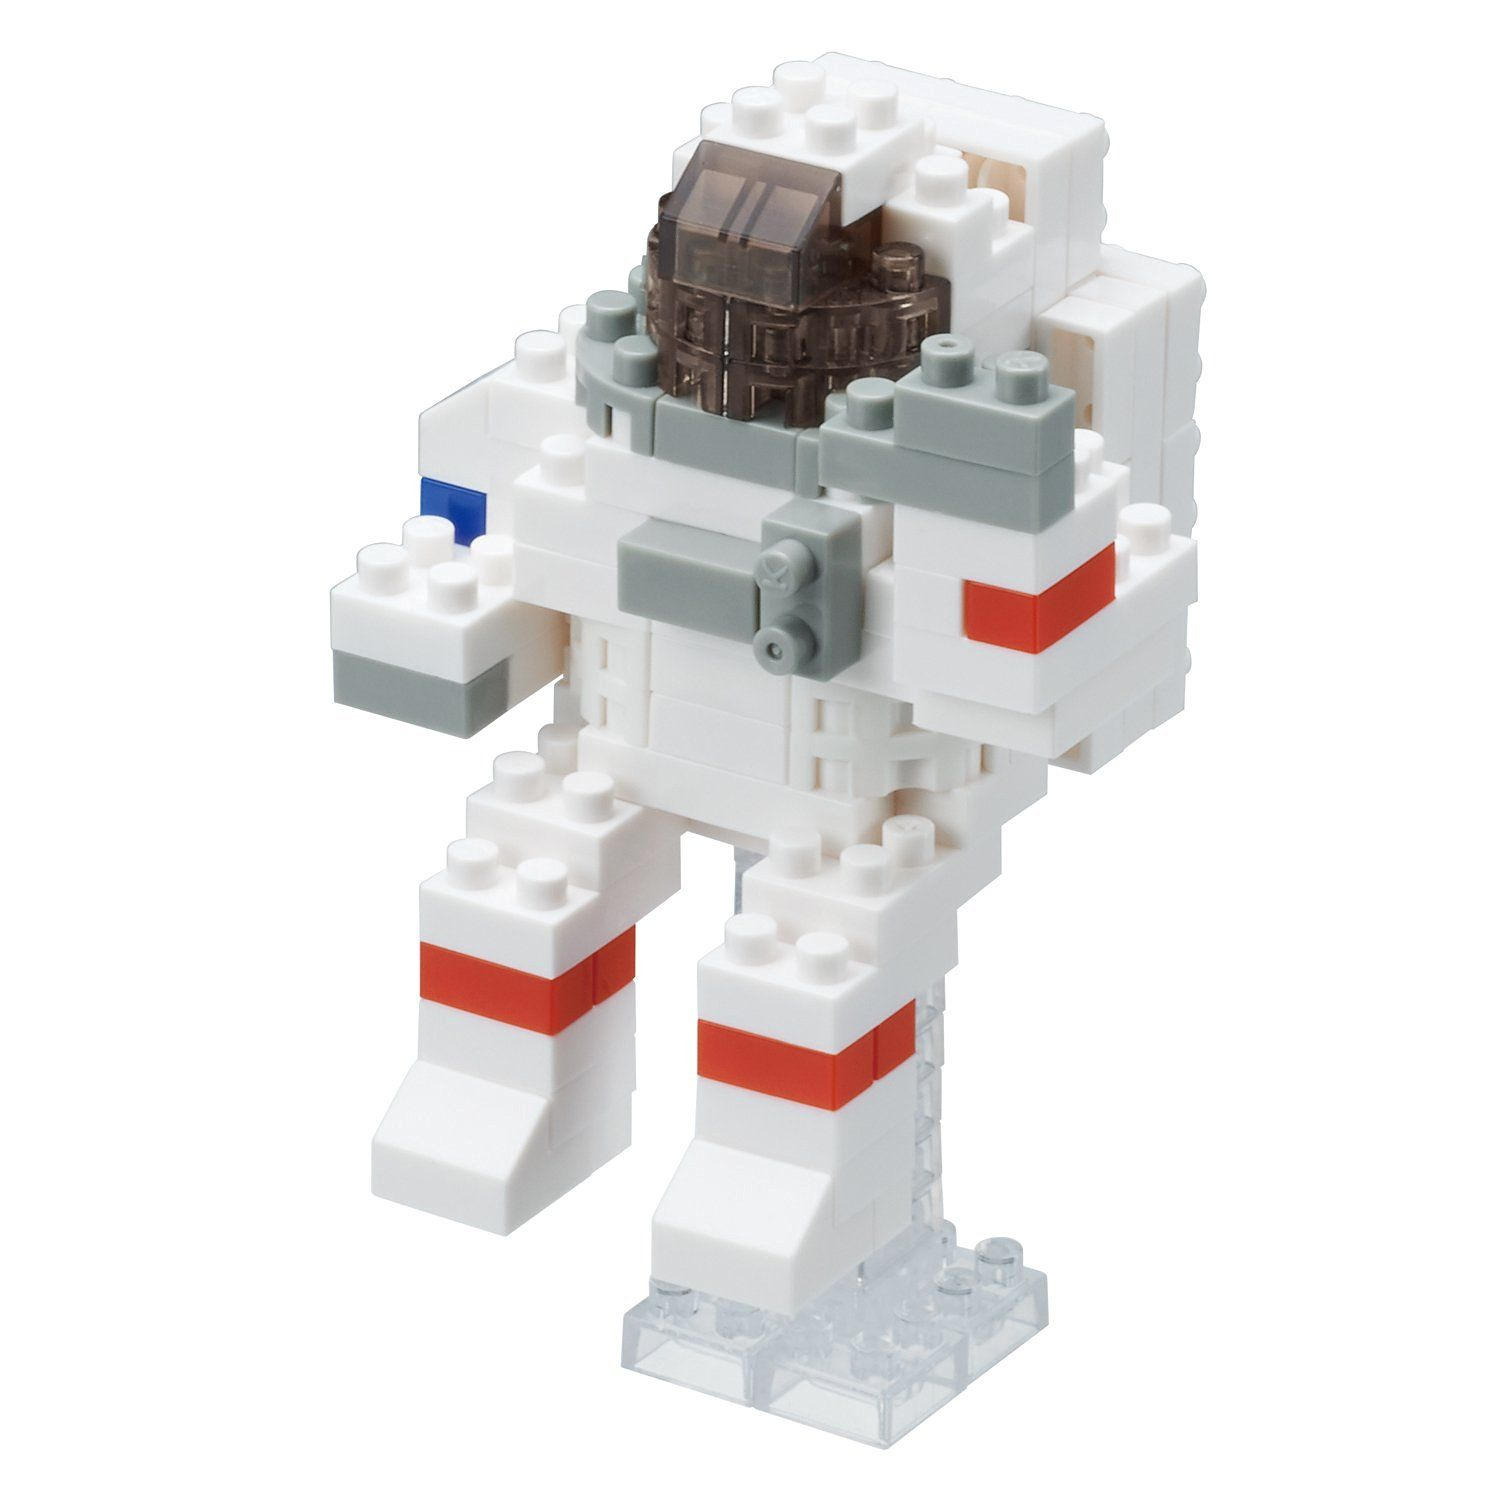 Astronaut Mini Building Set by Nanoblock (NBC198) by nanoblock